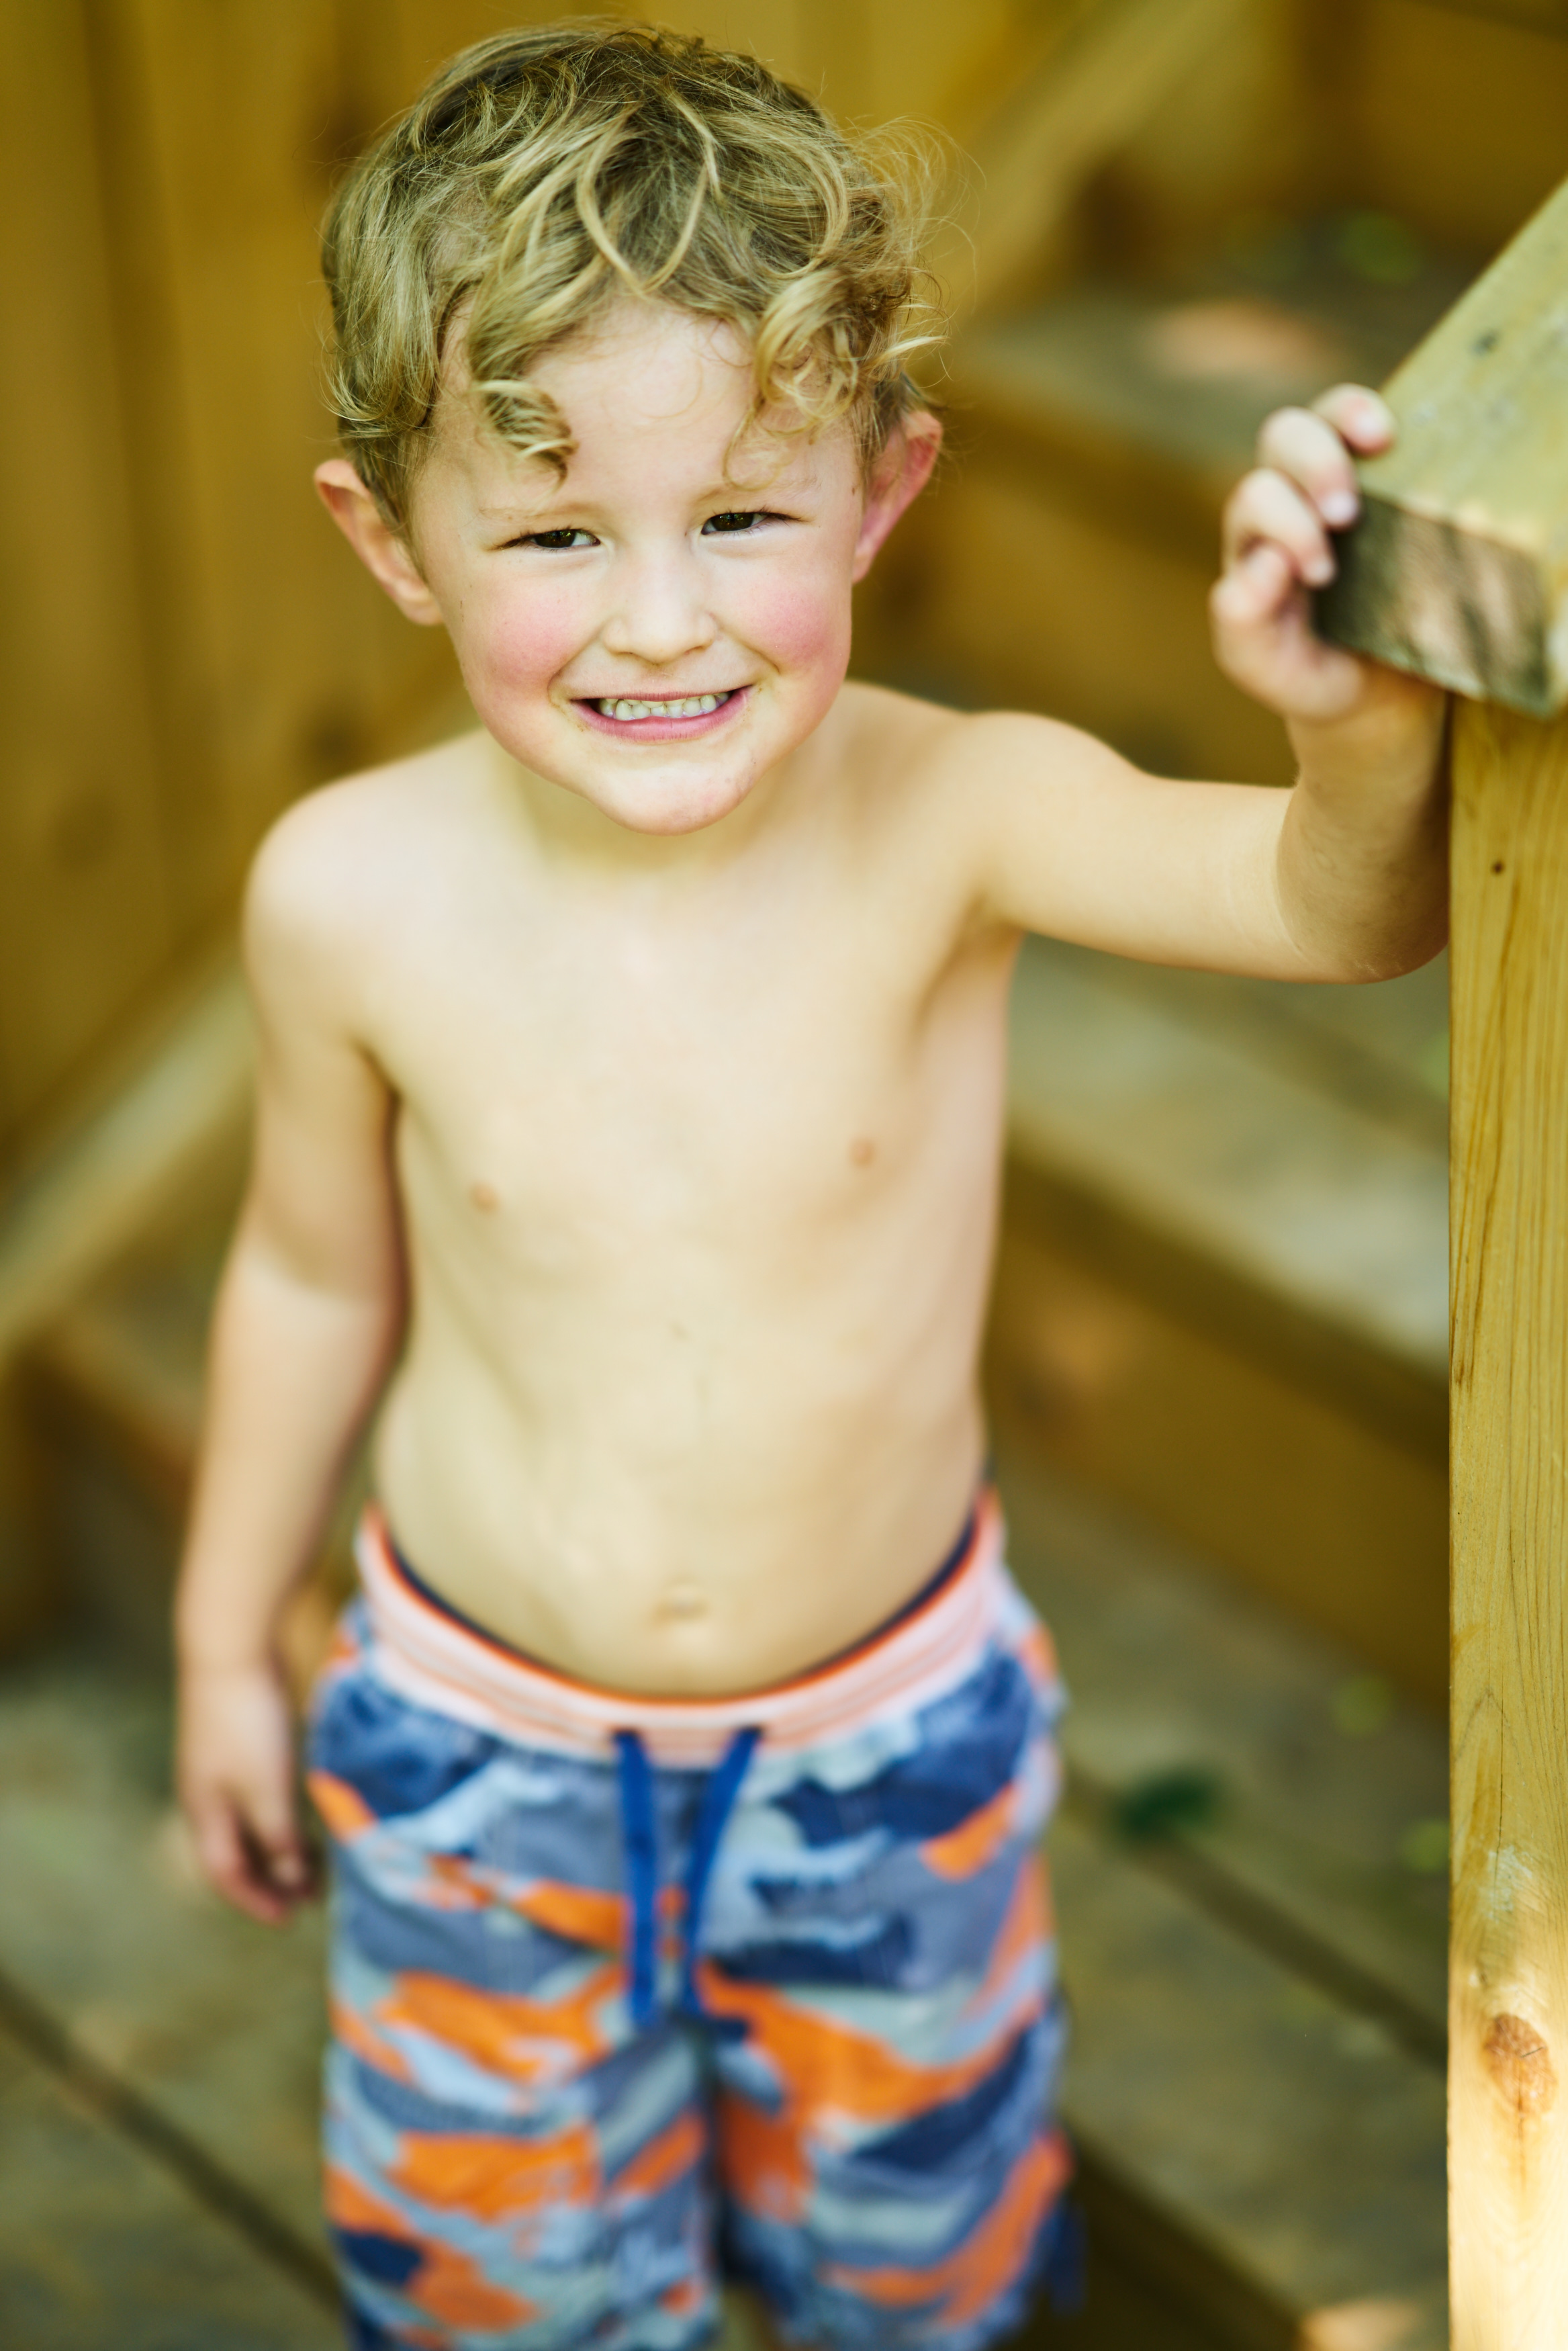 Kids-Will-Bathing-Suit-350.jpg